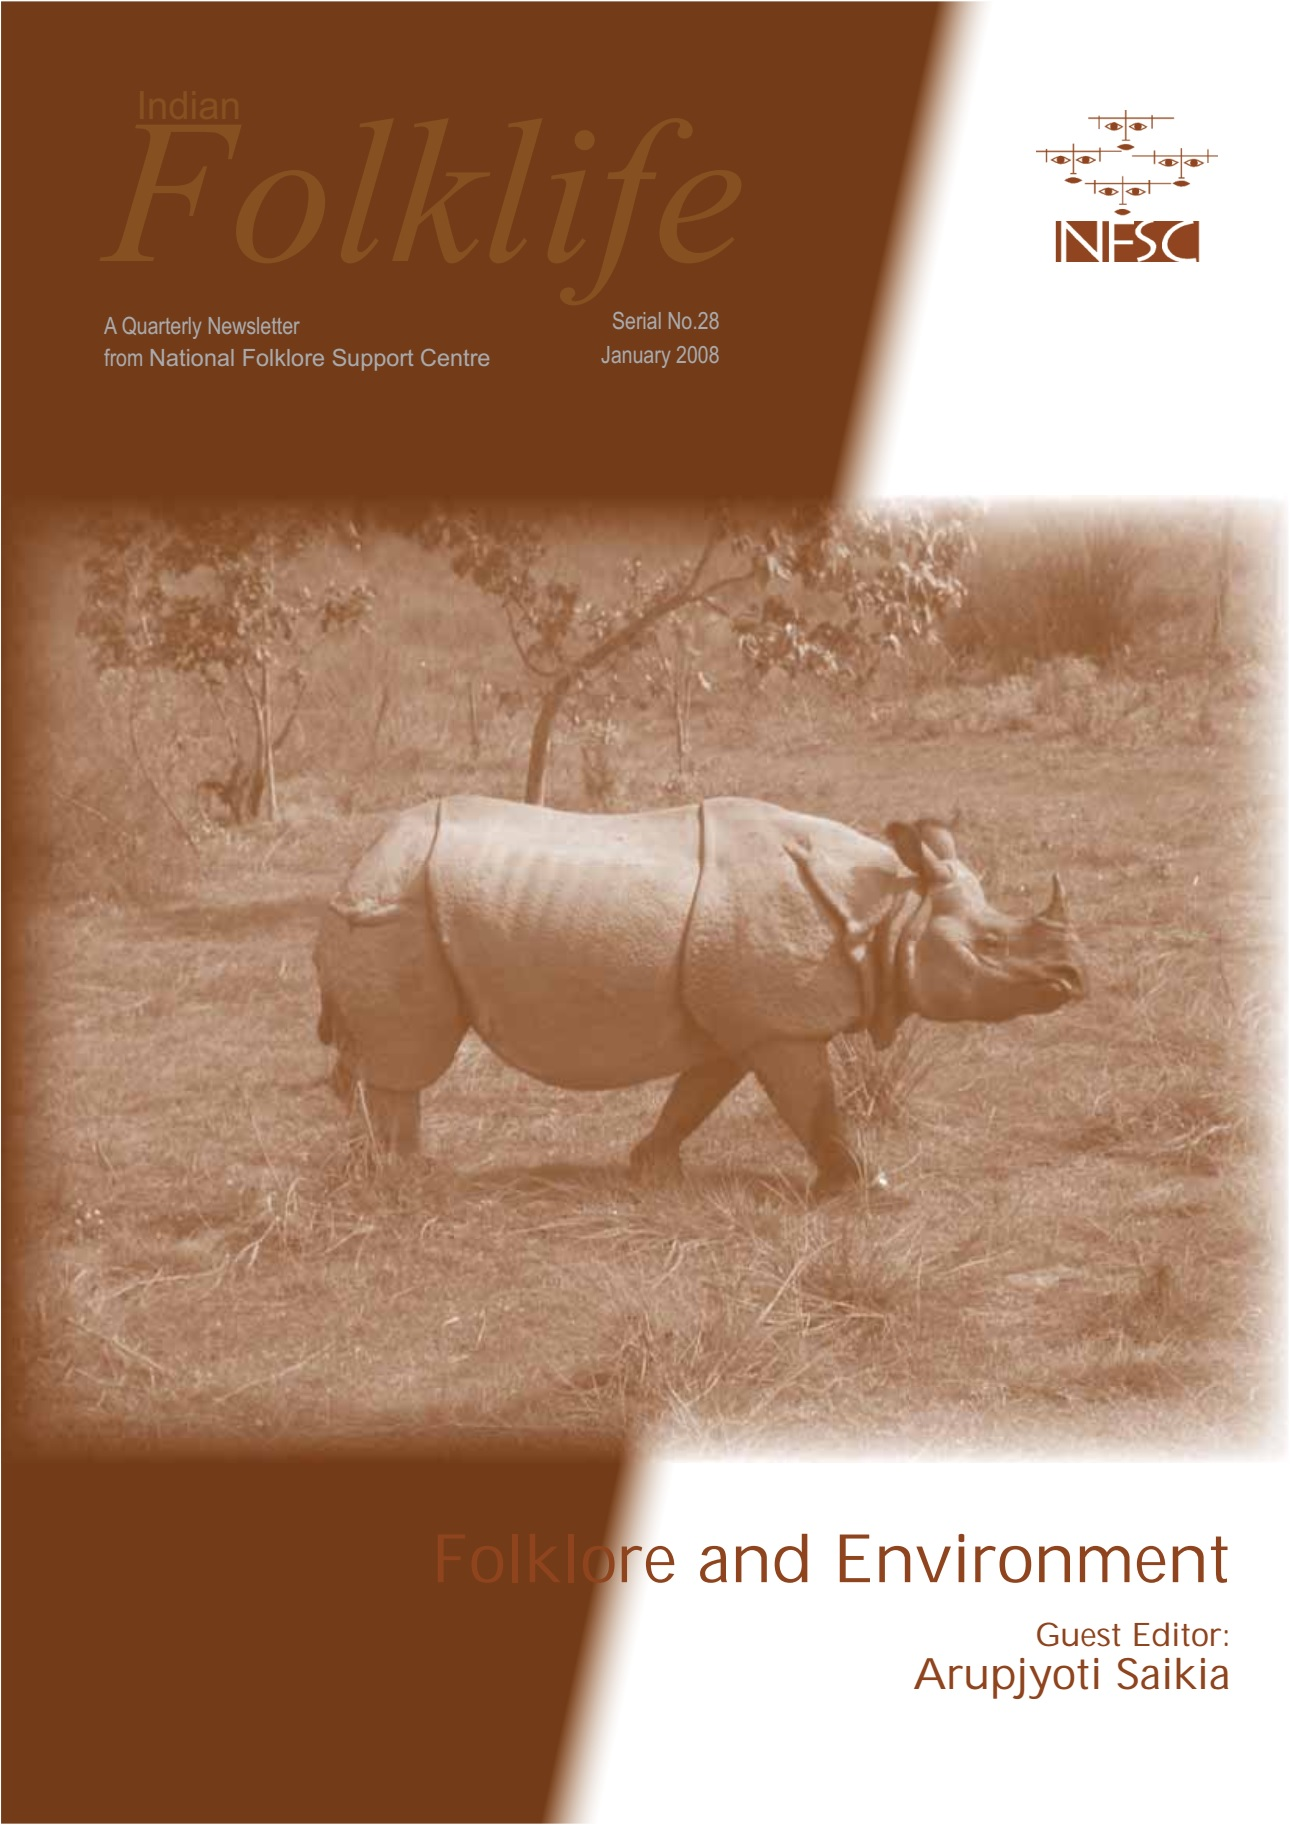 Indian Folklife, January 2008, 'Folklore and Environment'